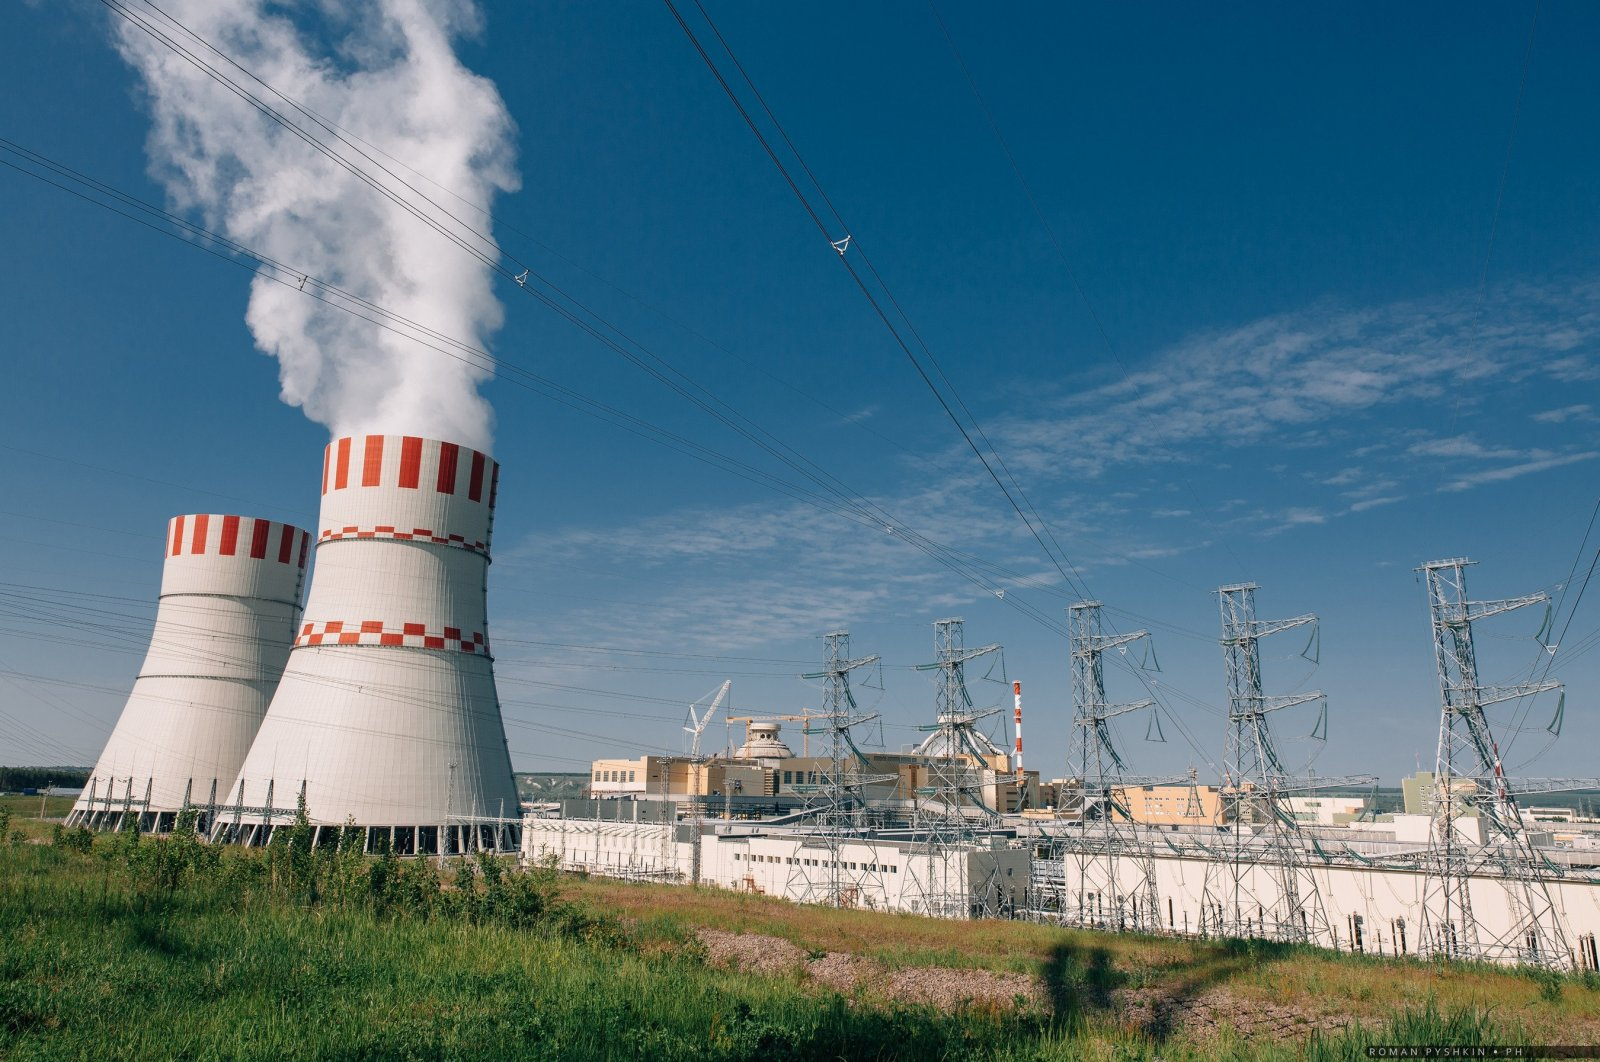 Turkey's first nuclear power plant Akkuyu will have the same technological features as Russia's Novovoronej NPP-2 in Voronej Oblast, March 4, 2018. (AA Photo)